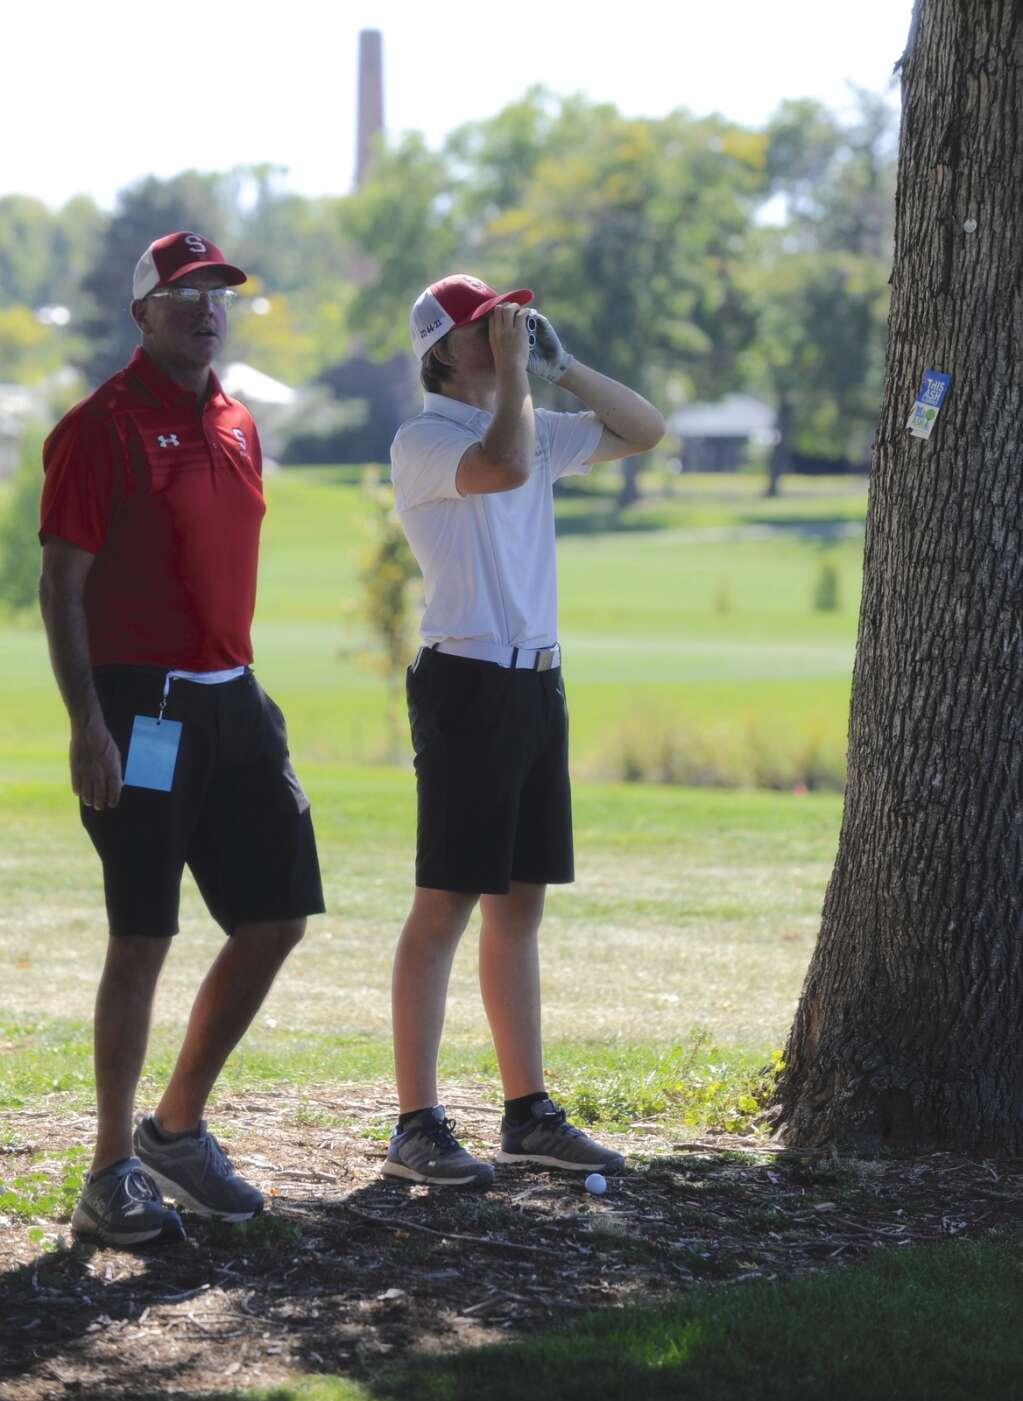 Steamboat Springs junior golfer Jeremy Nolting and Sailors head coach Andrew Donner evaluate a shot from near some trees at the 4A State Golf Championships at City Park Golf Course on Tuesday afternoon.   Shelby Reardon/Steamboat Pilot & Today